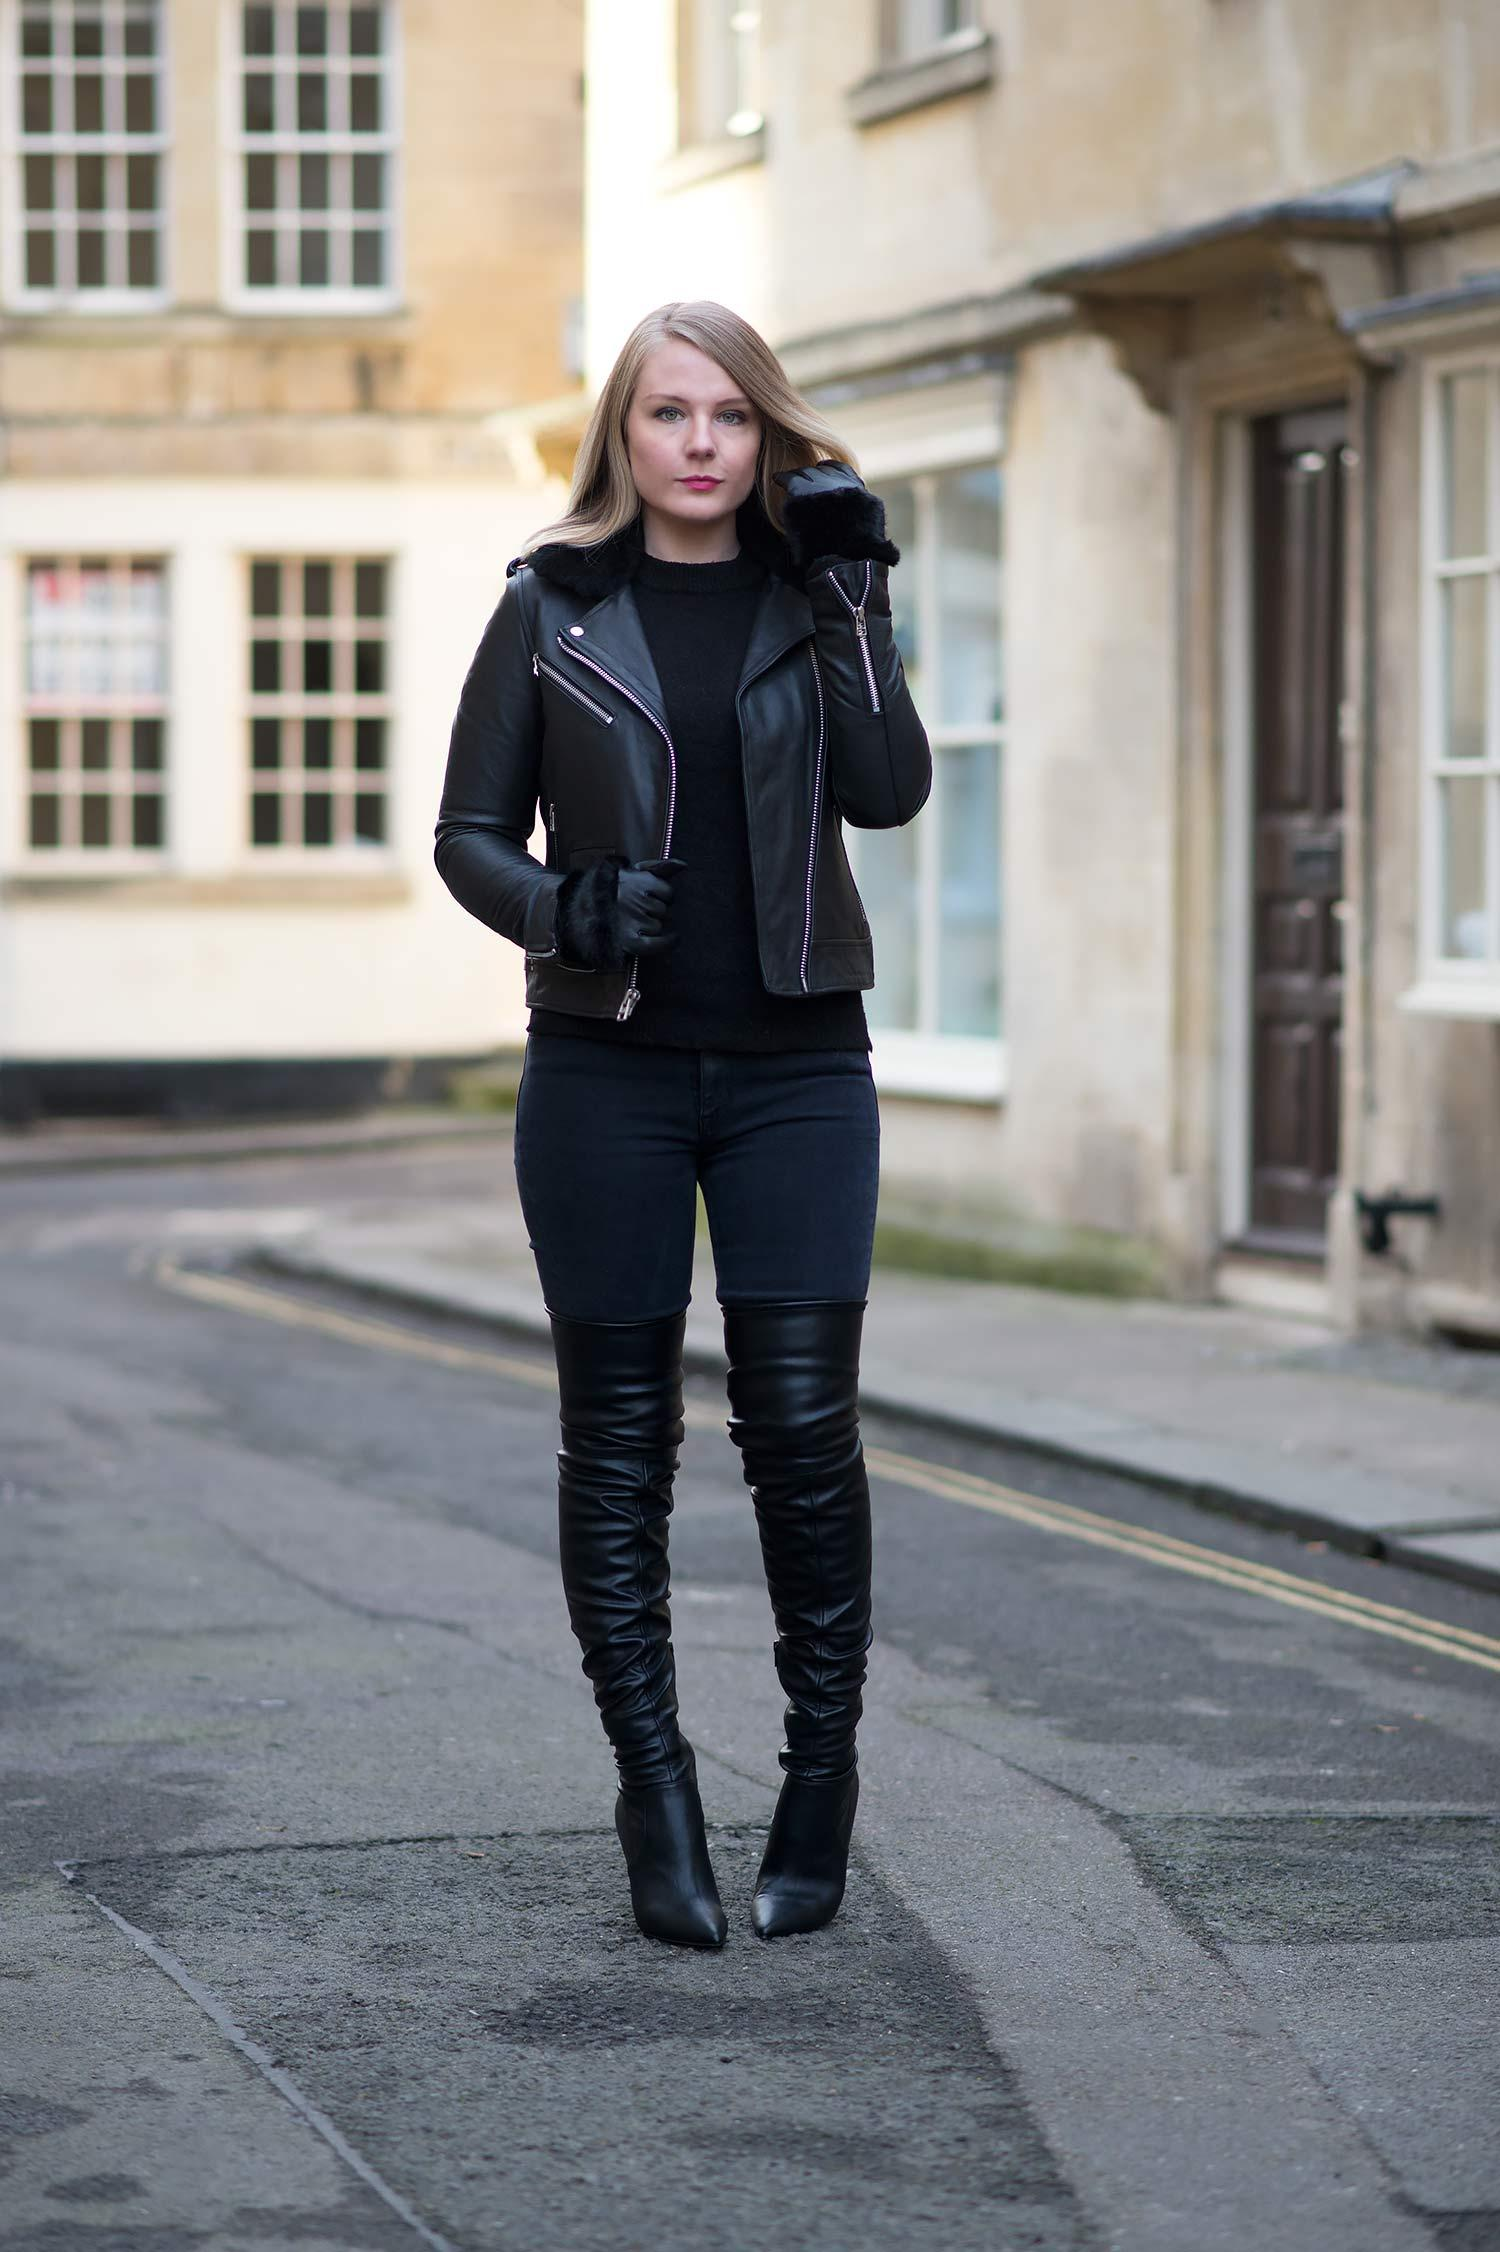 lorna burford street style fashion blogger black leather outfit